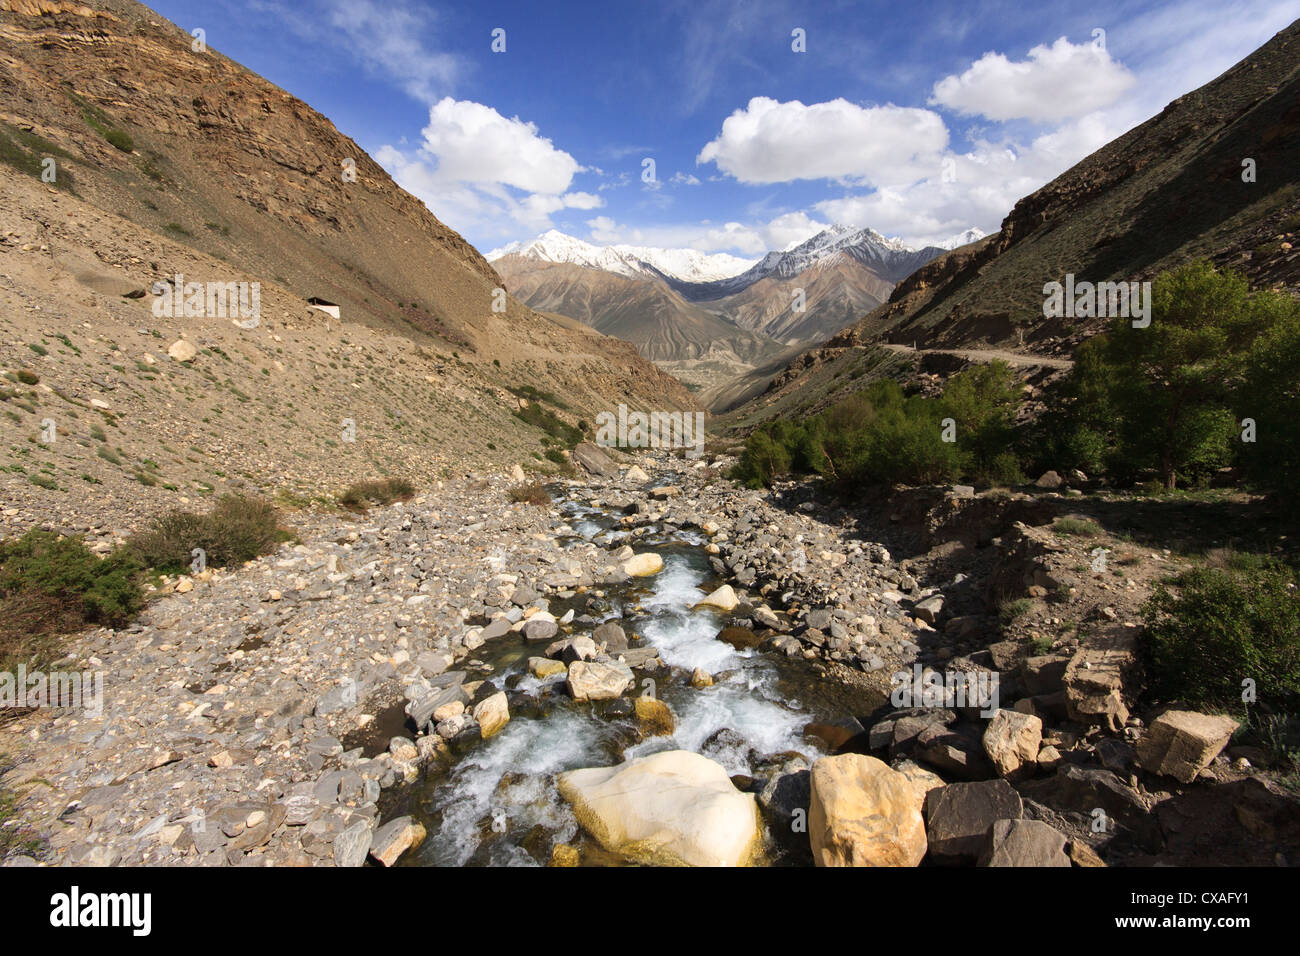 A view of the Afghan Hindu Kush mountain range from Tajikistan across the Wakhan valley - Stock Image